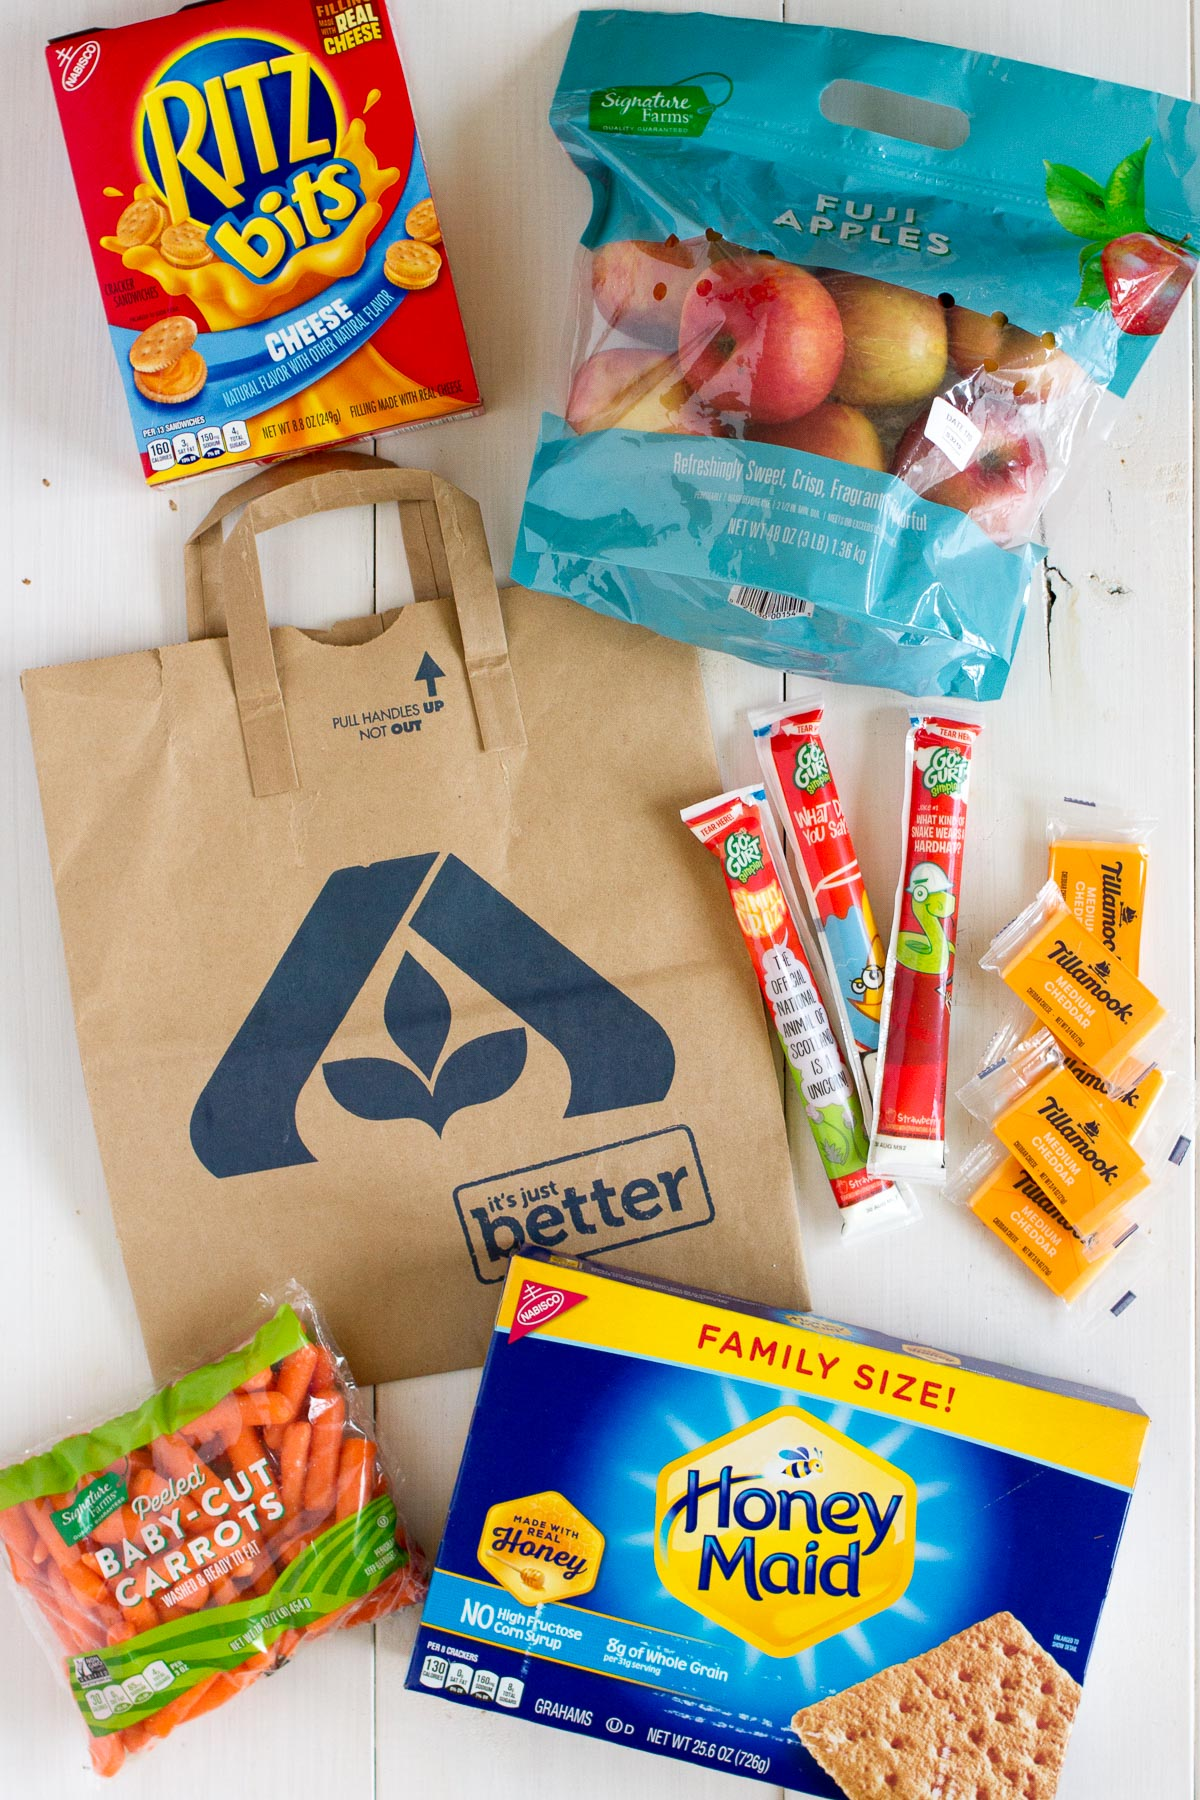 You can pick up all your favorite summer snack tray items at your local Albertsons store.